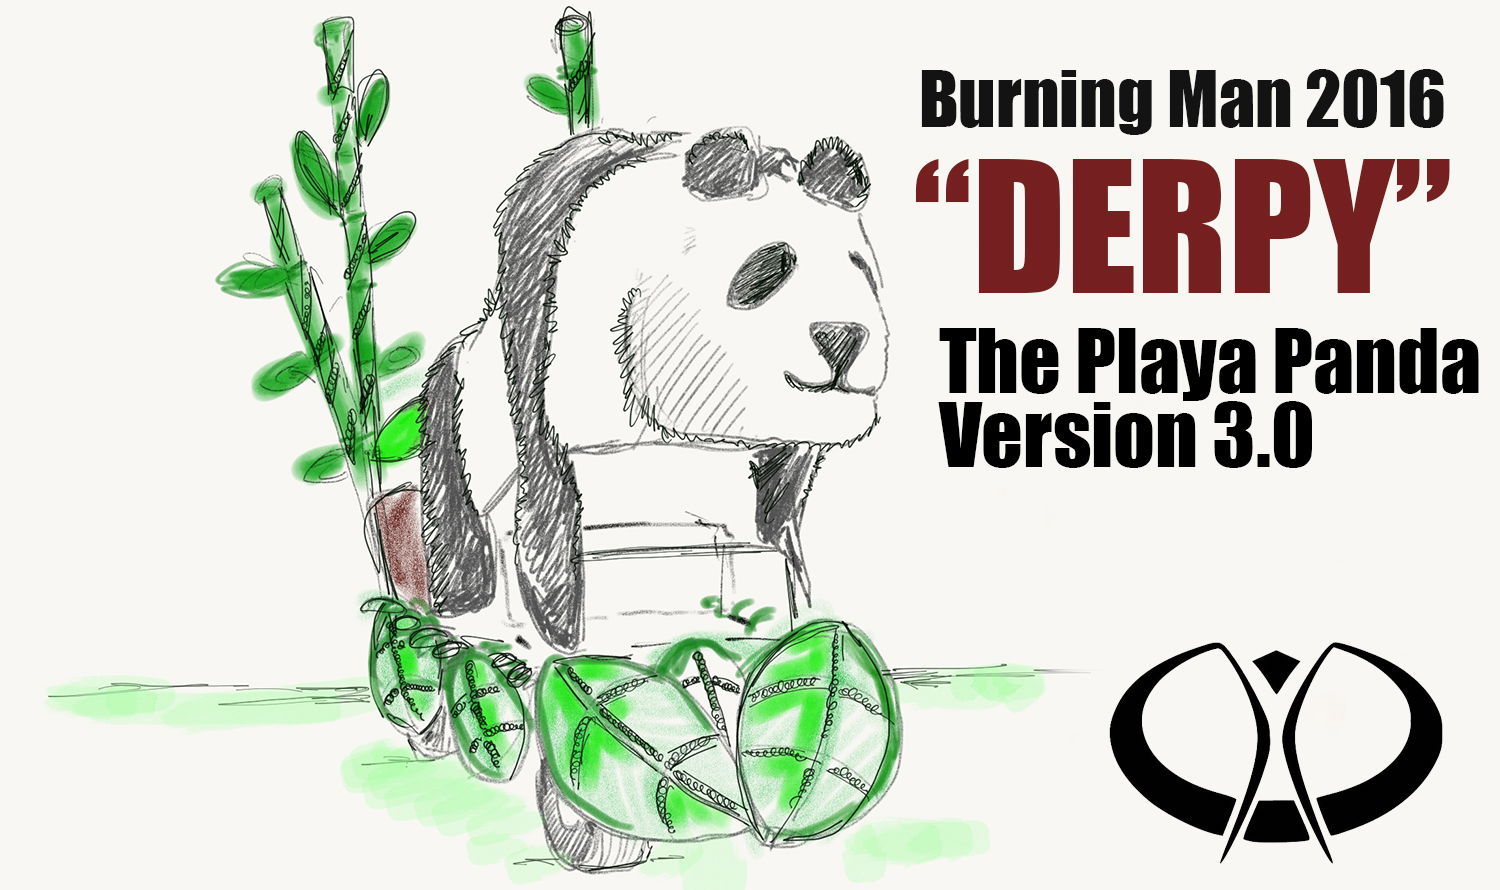 This is the NEW Derpy the Playa Panda version 3.0 for the 2016 Burning Man Event.